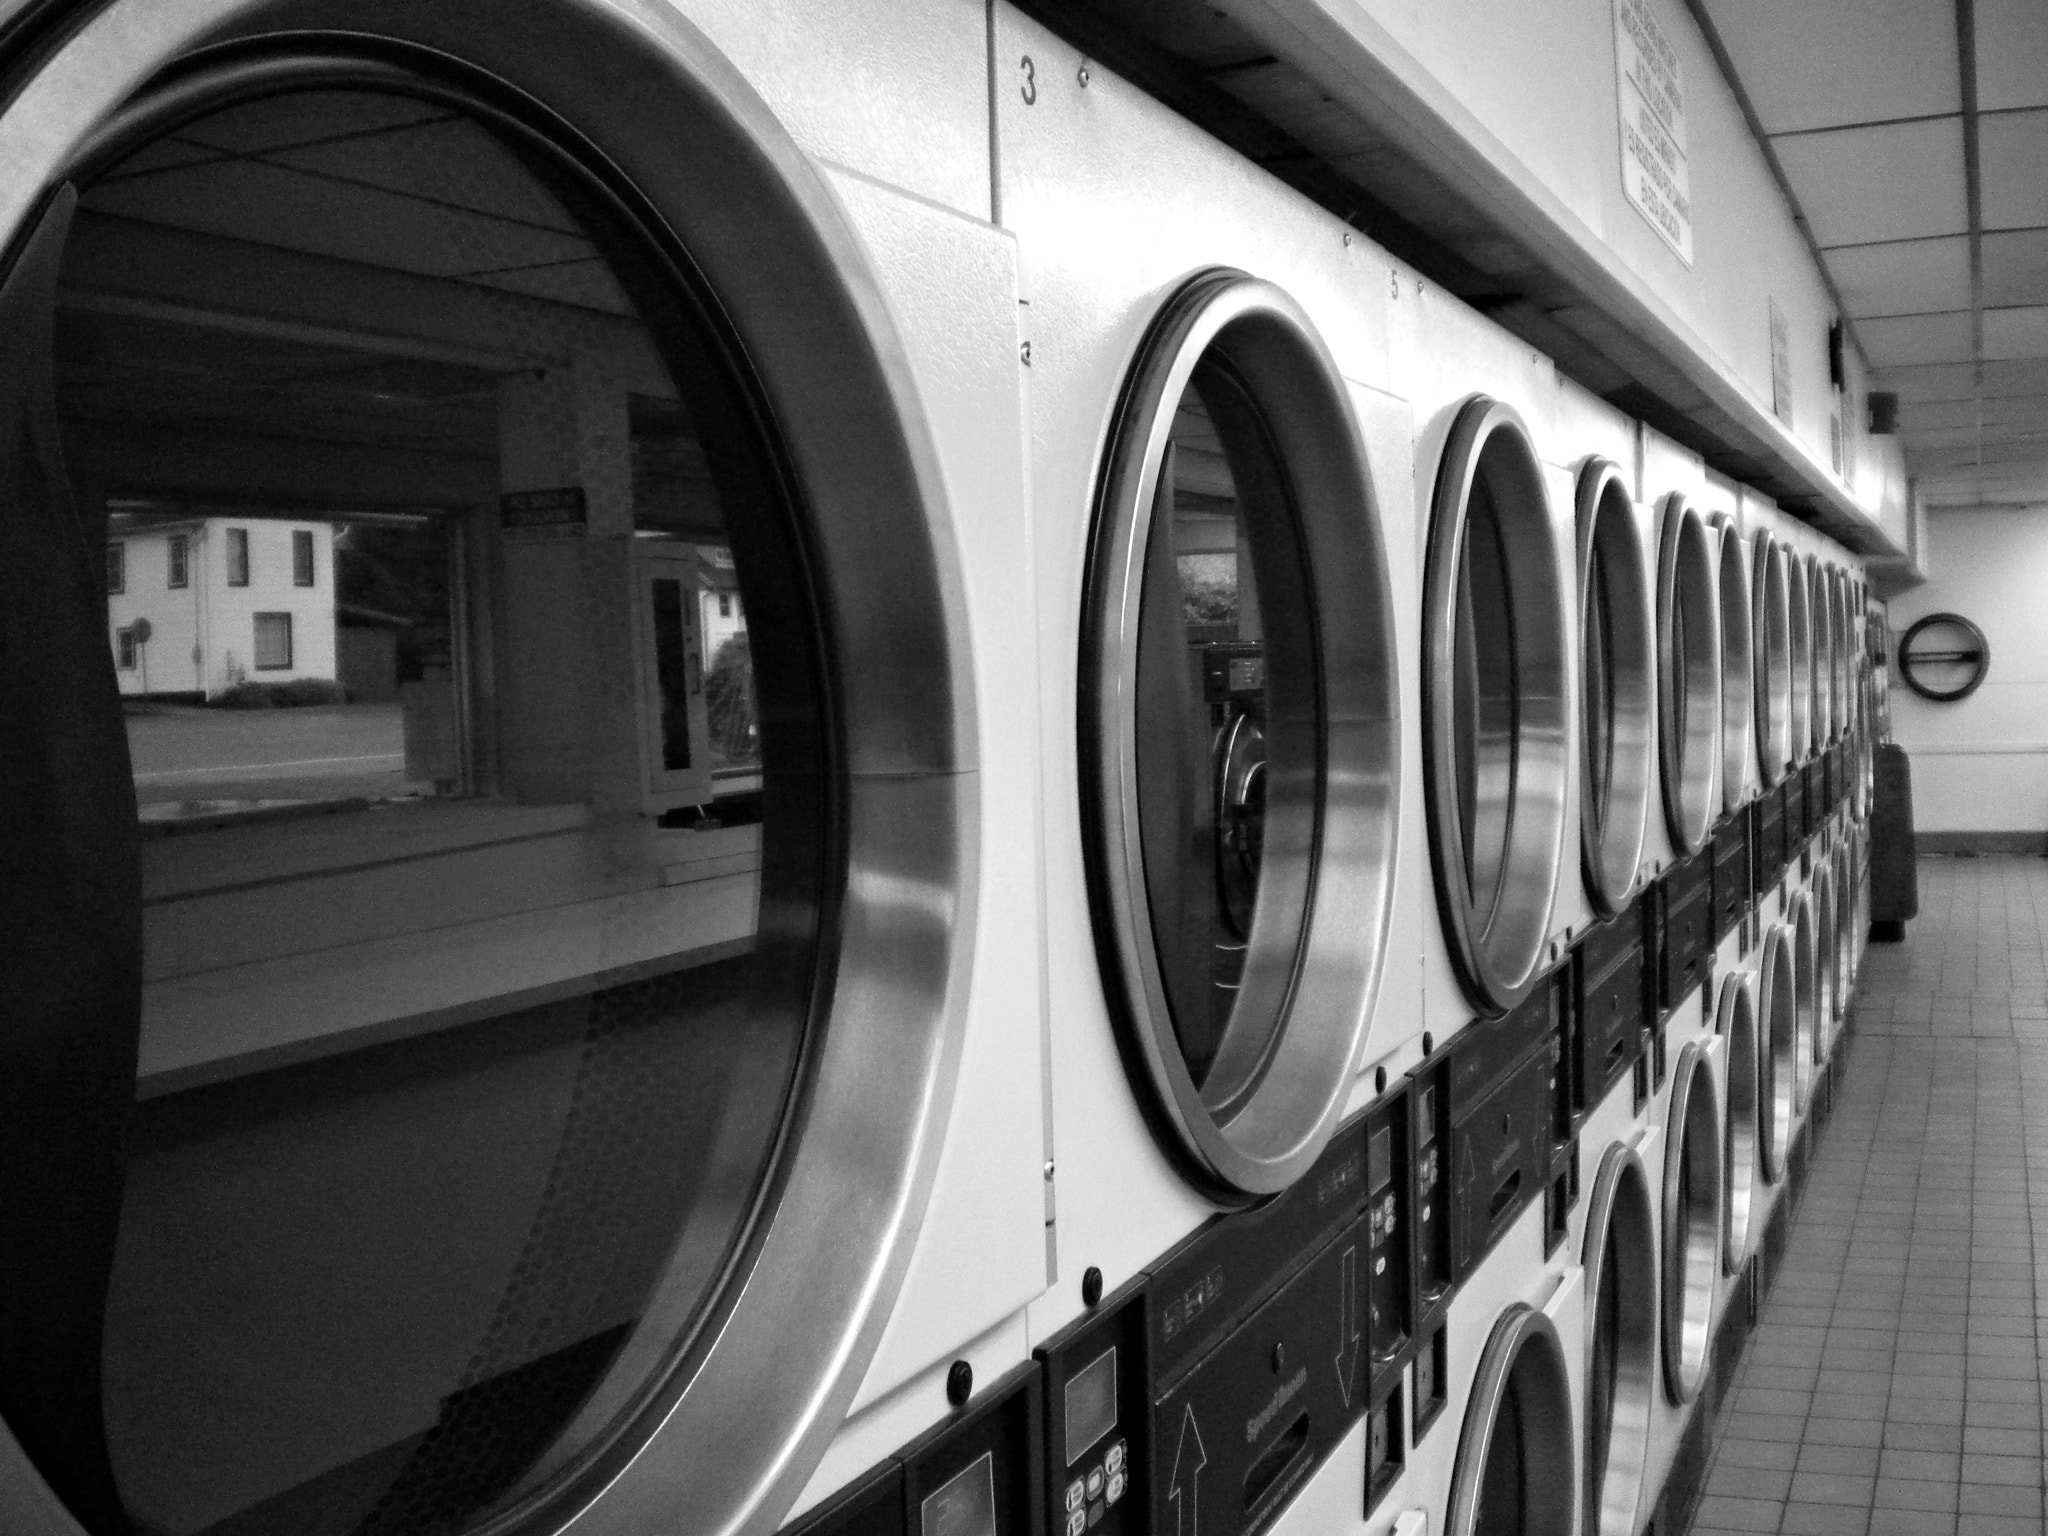 Photograph Laundromat B&W by S. Vargr on 500px